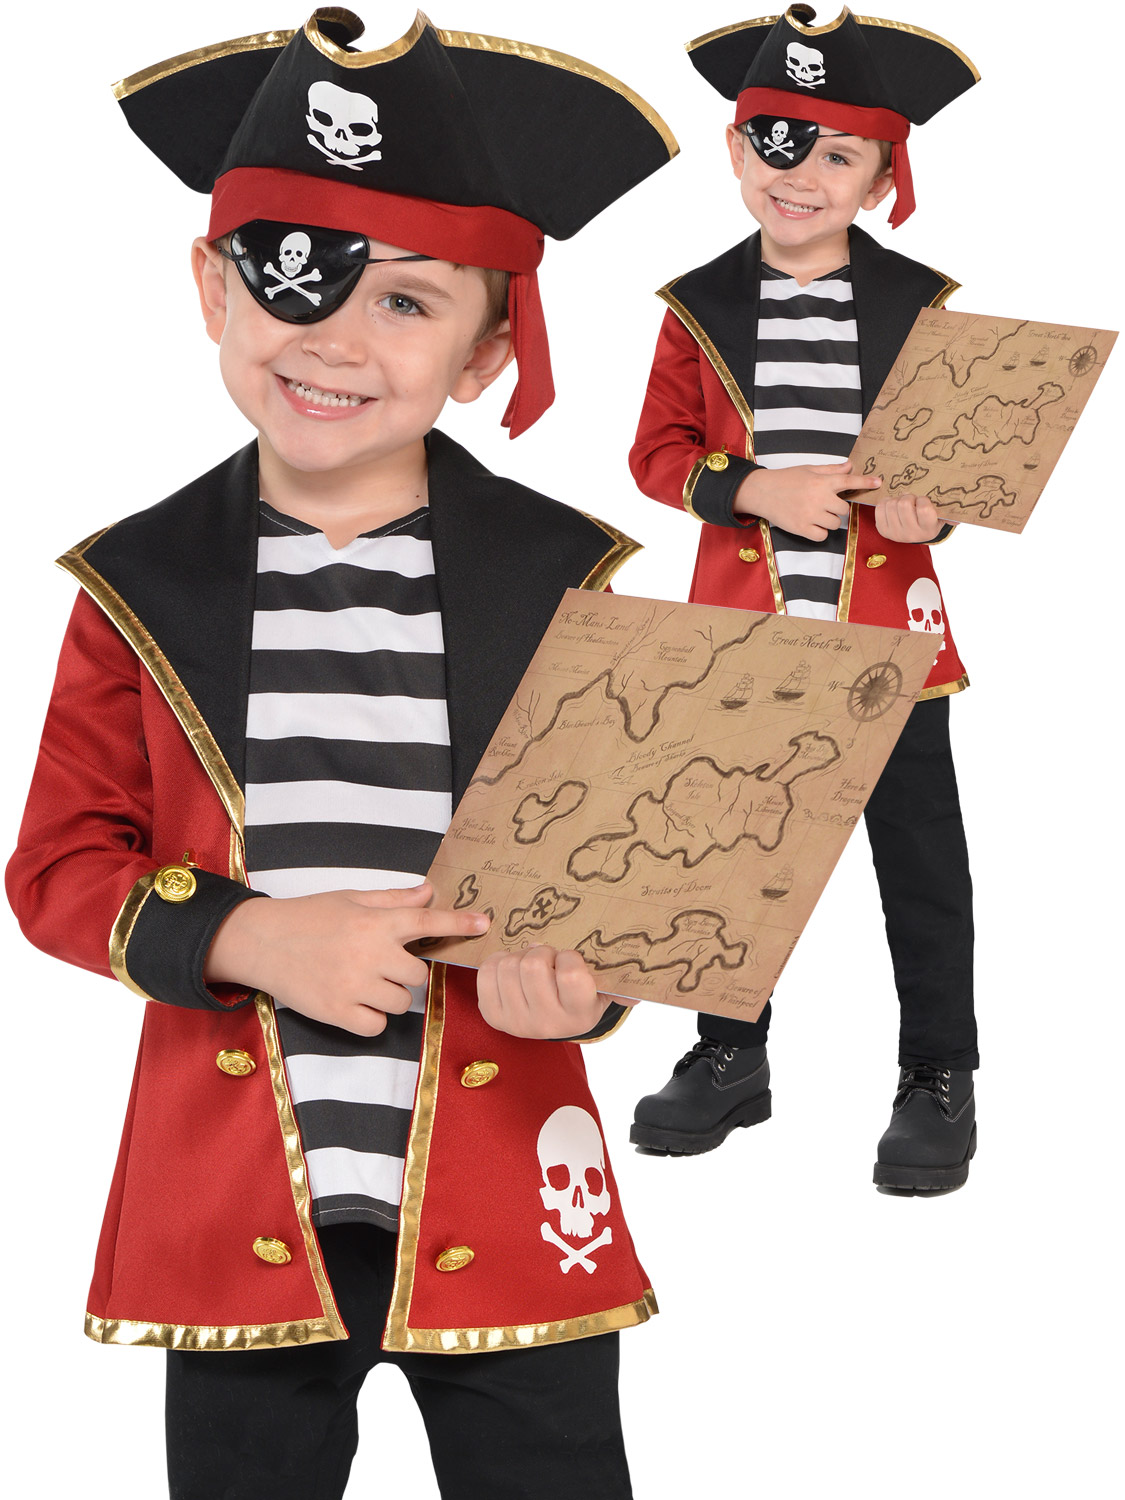 MENS / WOMENS PIRATE FANCY DRESS COSTUMES ONE SIZE FITS ALL DESIGN FANCY DRESS ADULT CARIBBEAN PIRATE XL FITS TO A 48